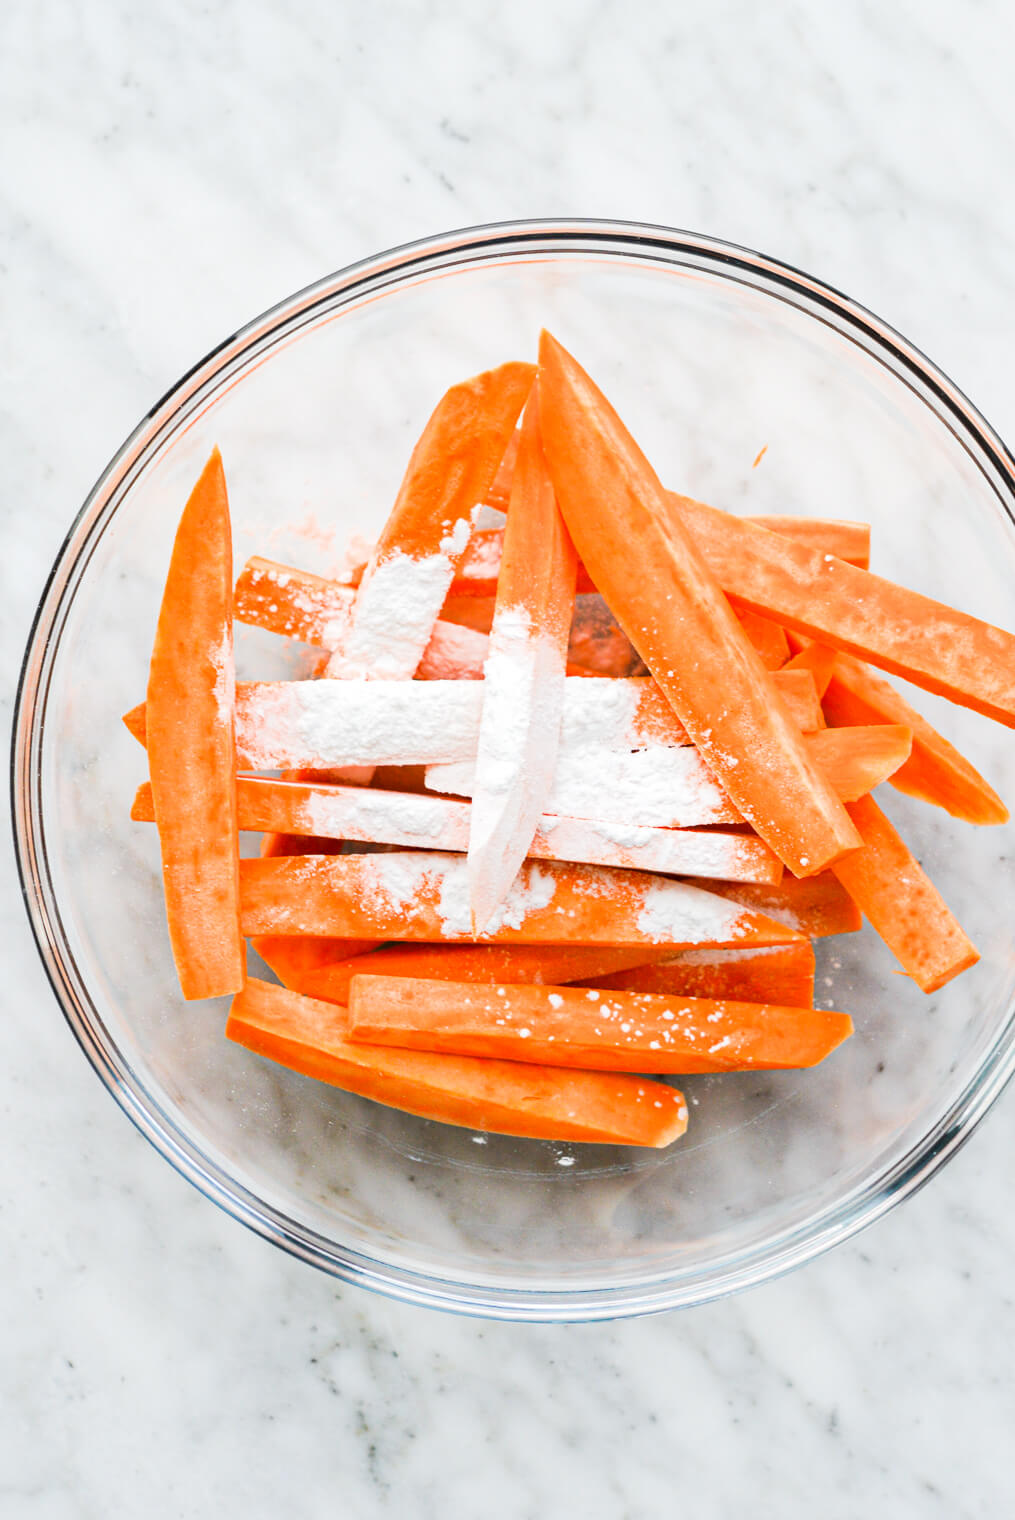 a clear glass bowl of fry-cut sweet potatoes with a teaspoon of arrowroot starch over top them